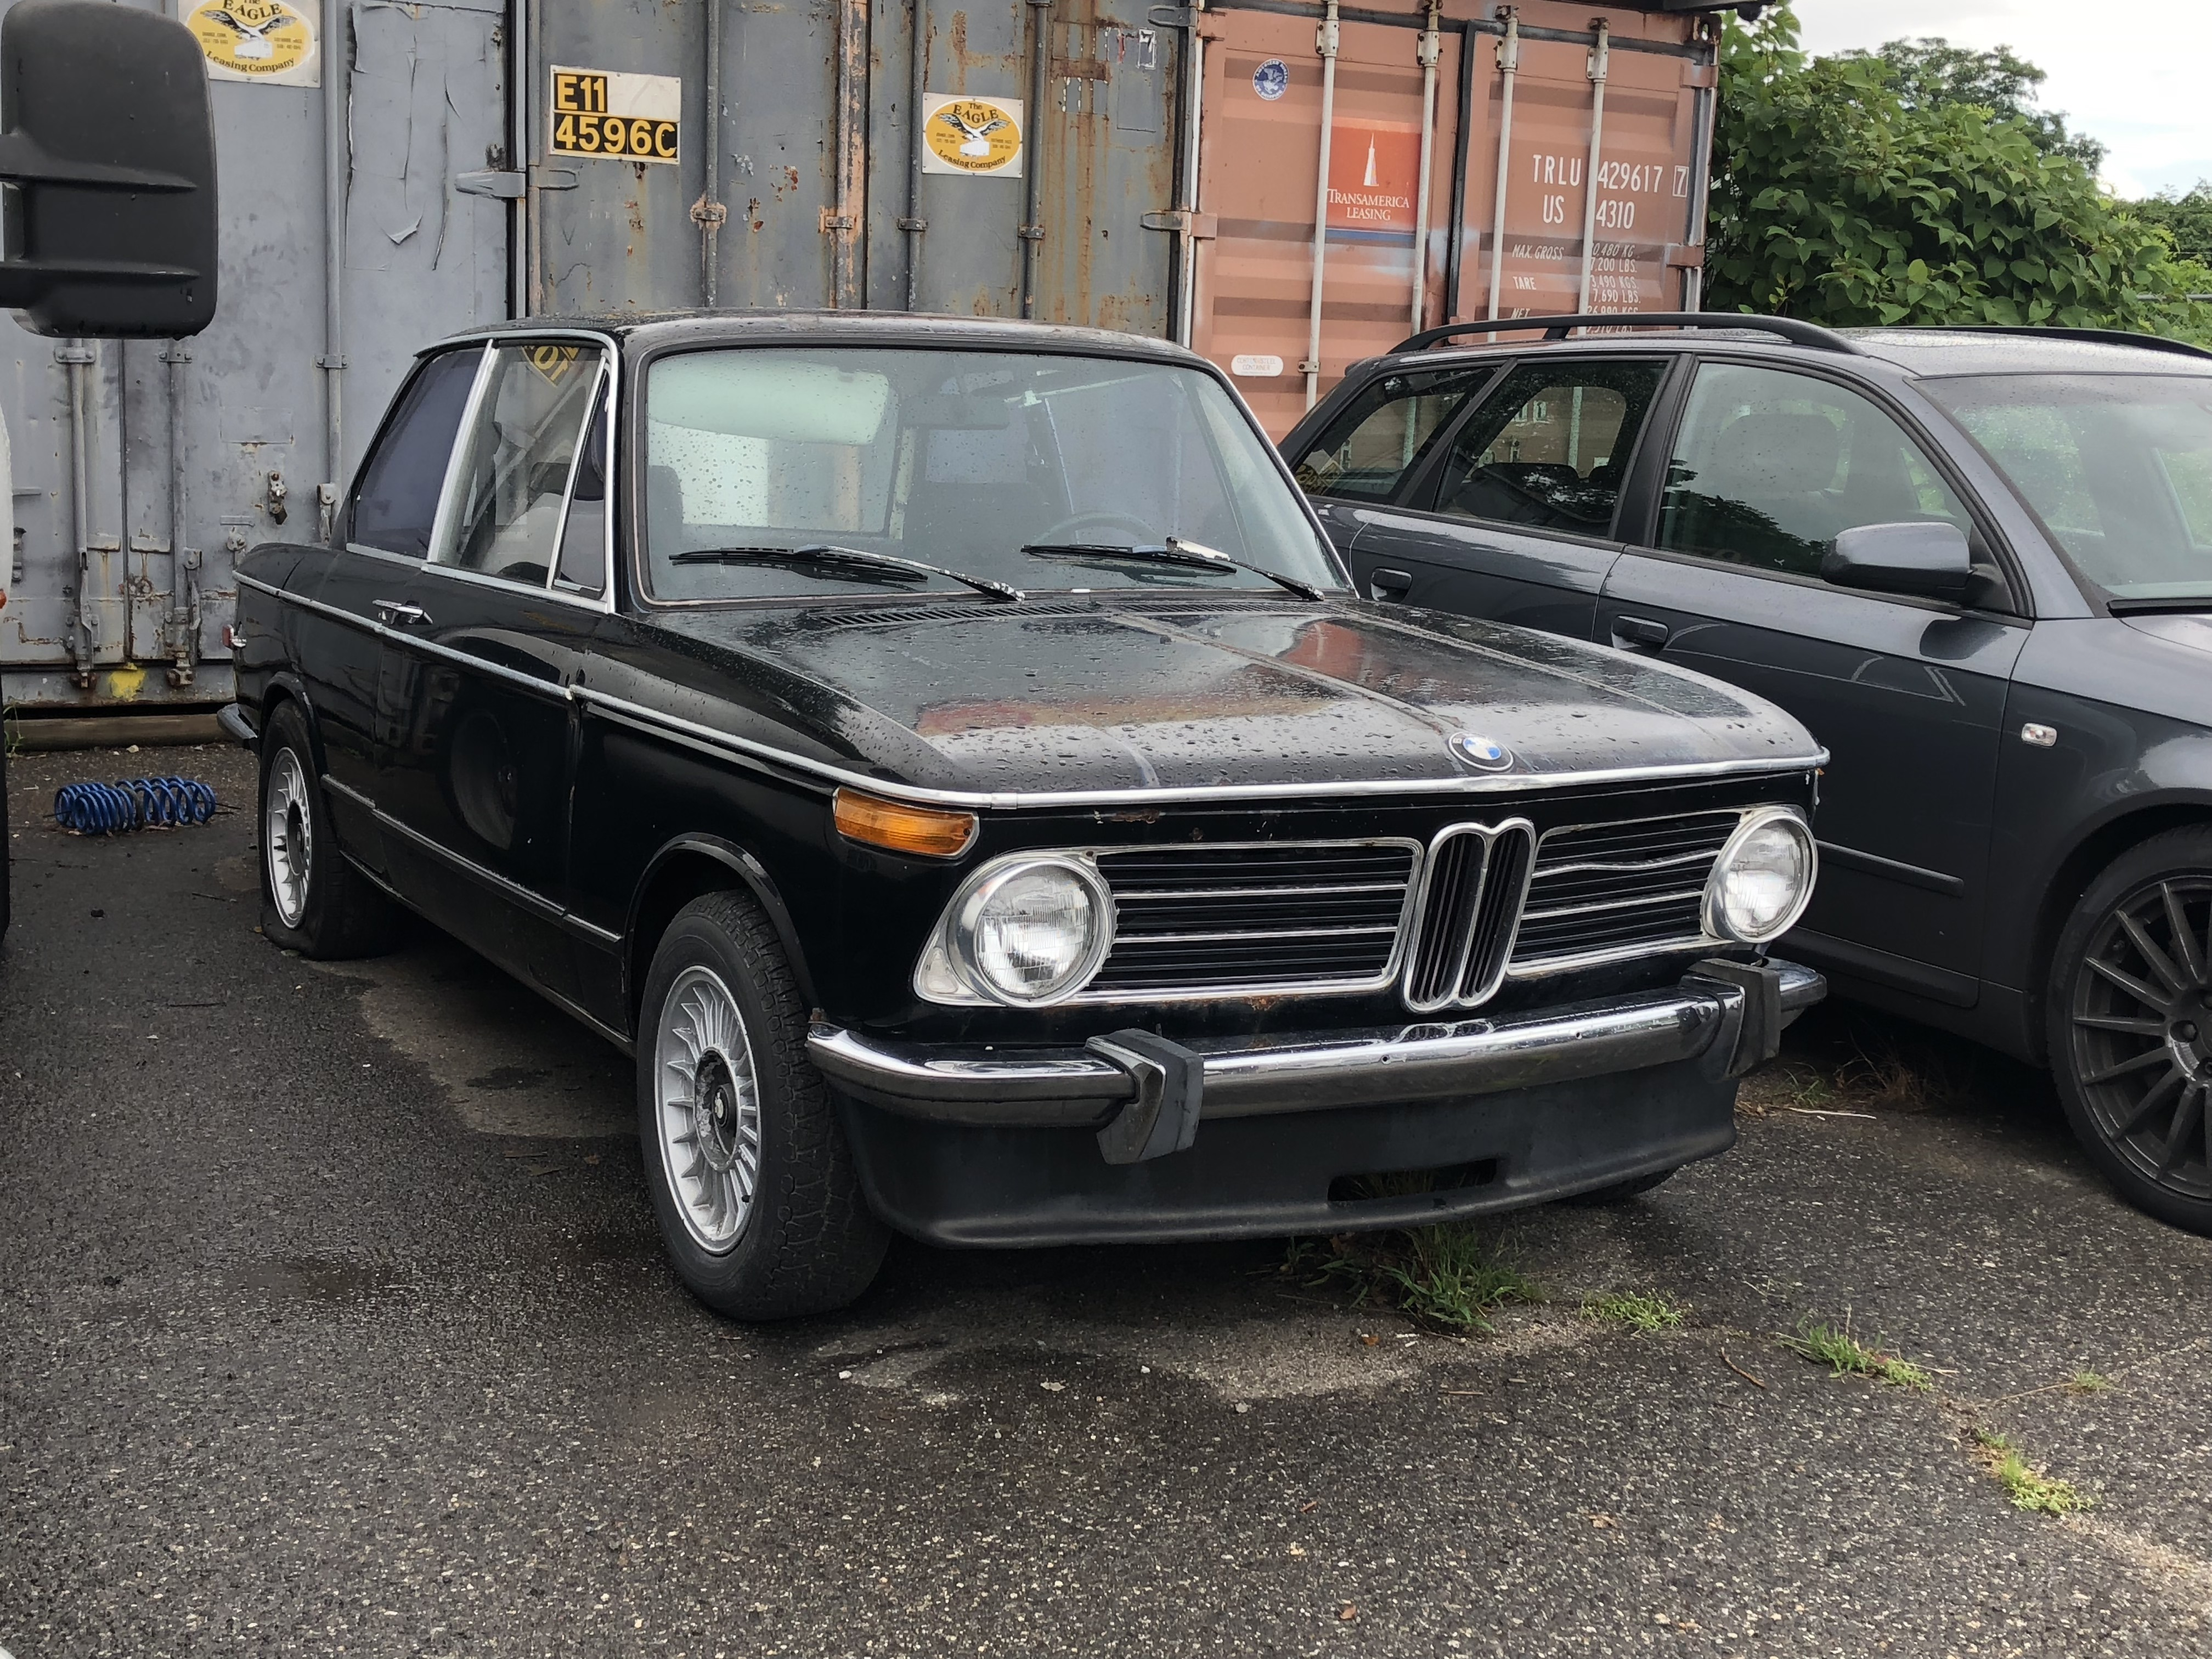 1972 Bmw 2002tii Project For Sale Bmw 2002 And Neue Klasse Cars For Sale Wanted Bmw 2002 Faq